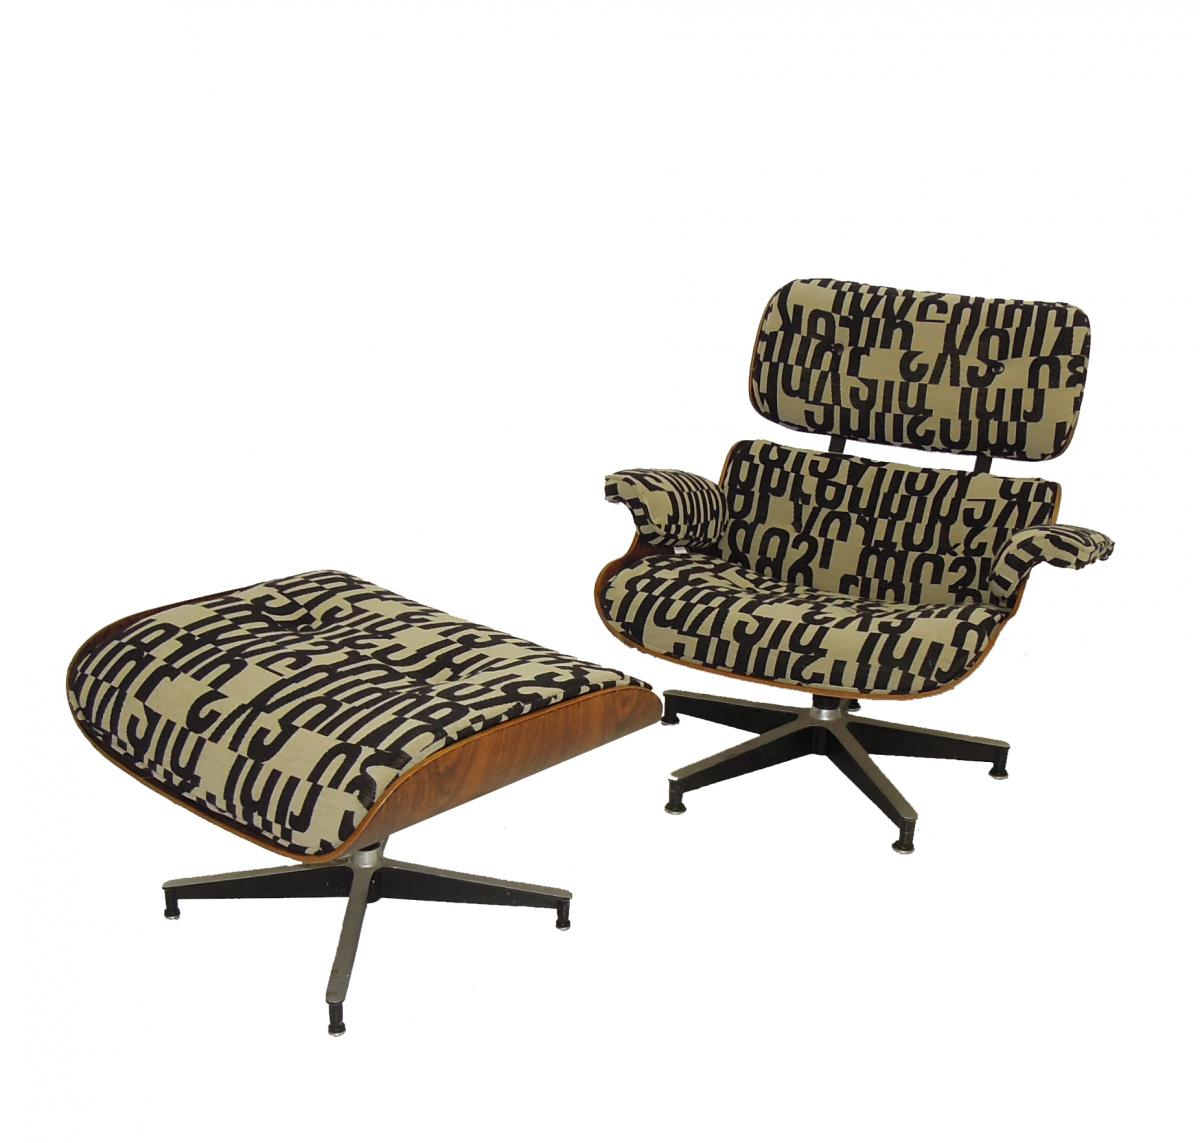 Eames Lounge Chair Reupholster Maharam Fabric MOD